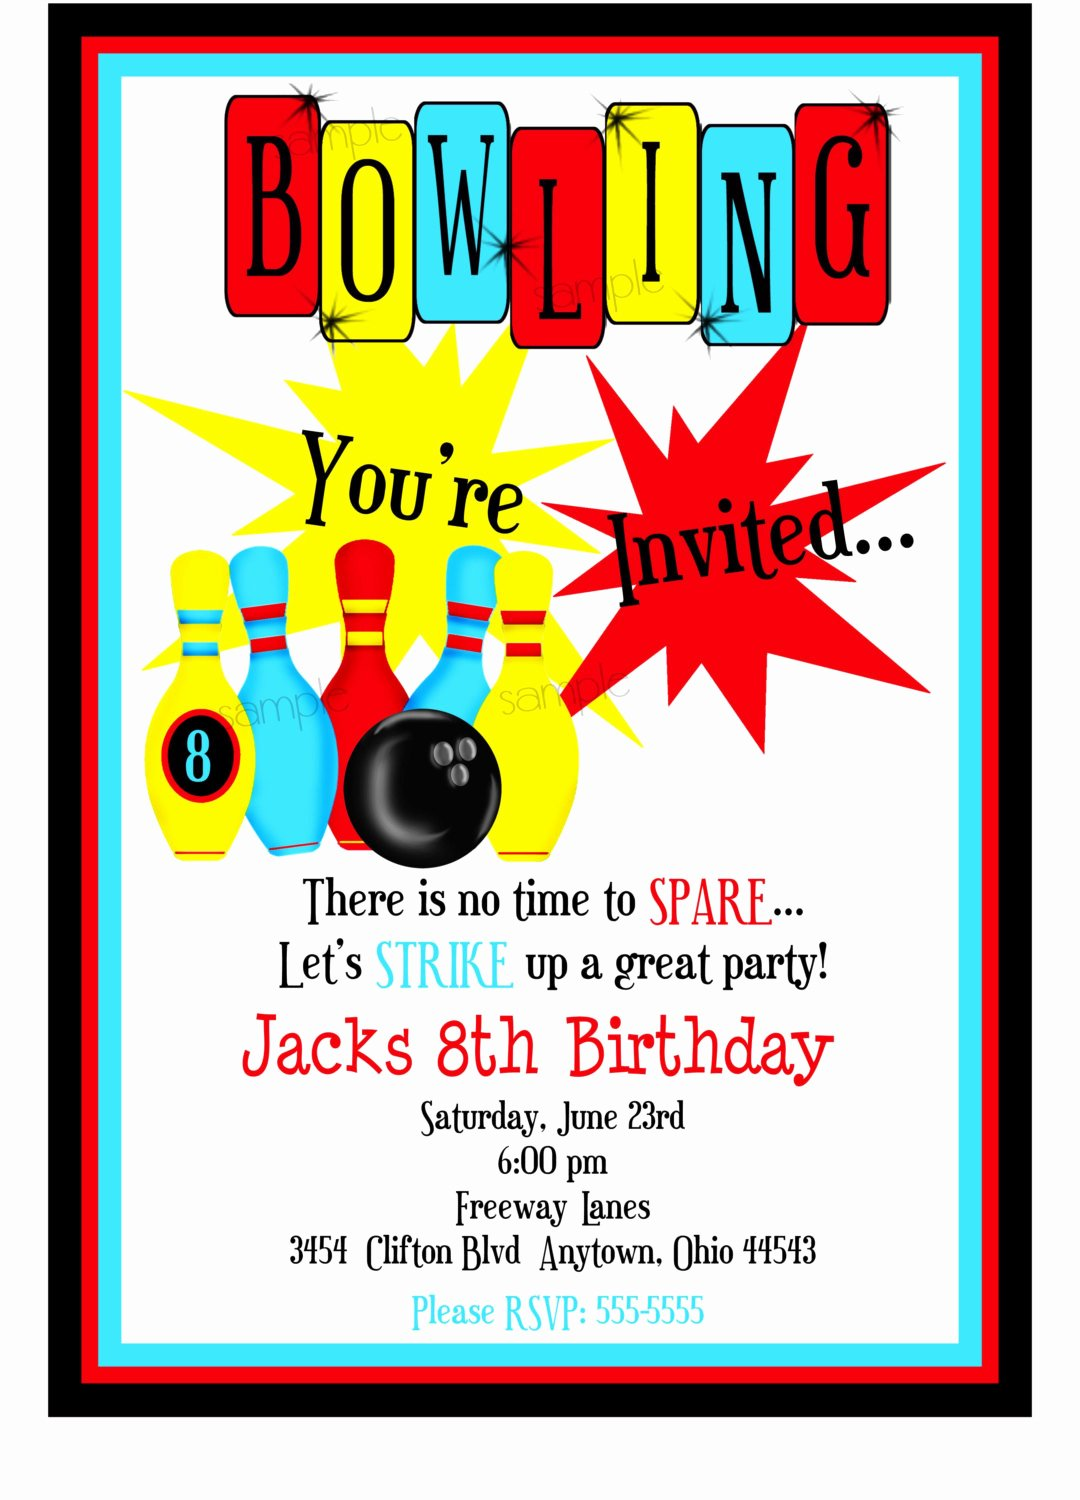 Bowling Party Invitation Templates Free Beautiful Bowling Invitations Boys Bowling Birthday Party Cosmic